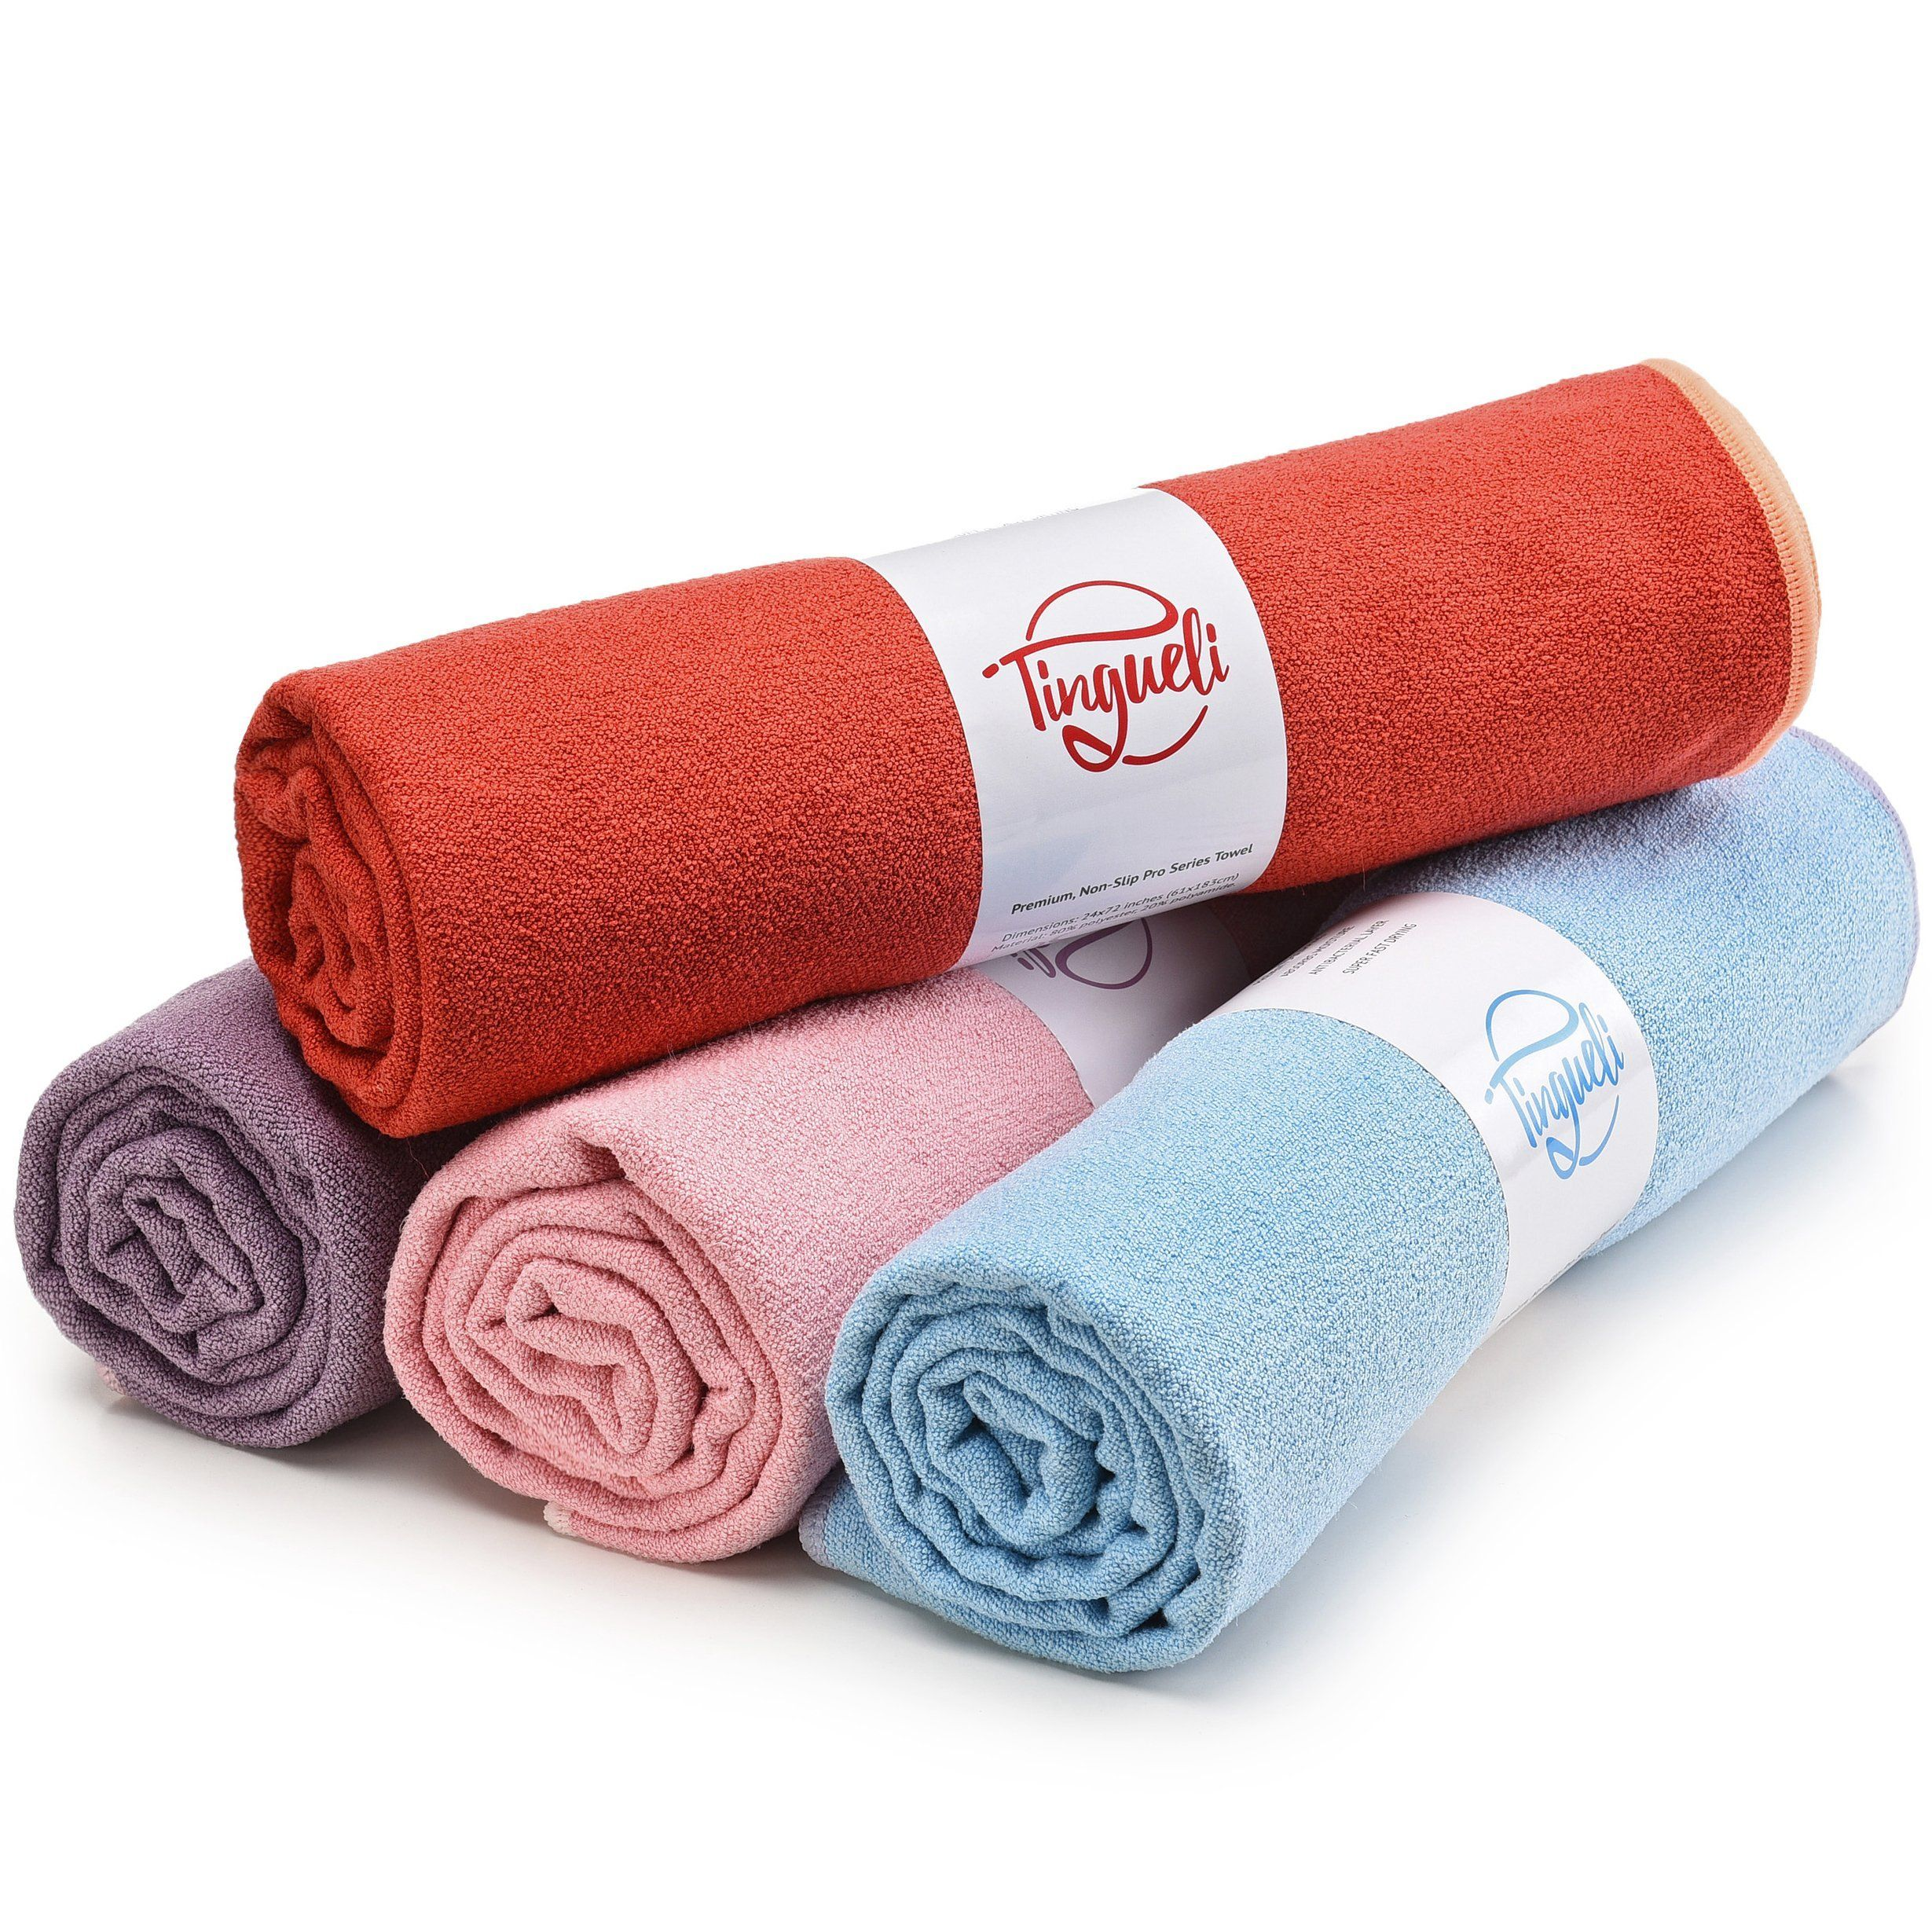 in carrying straps yoga mat combo w dty clipped premium trio bikram products mamaroo mats rev